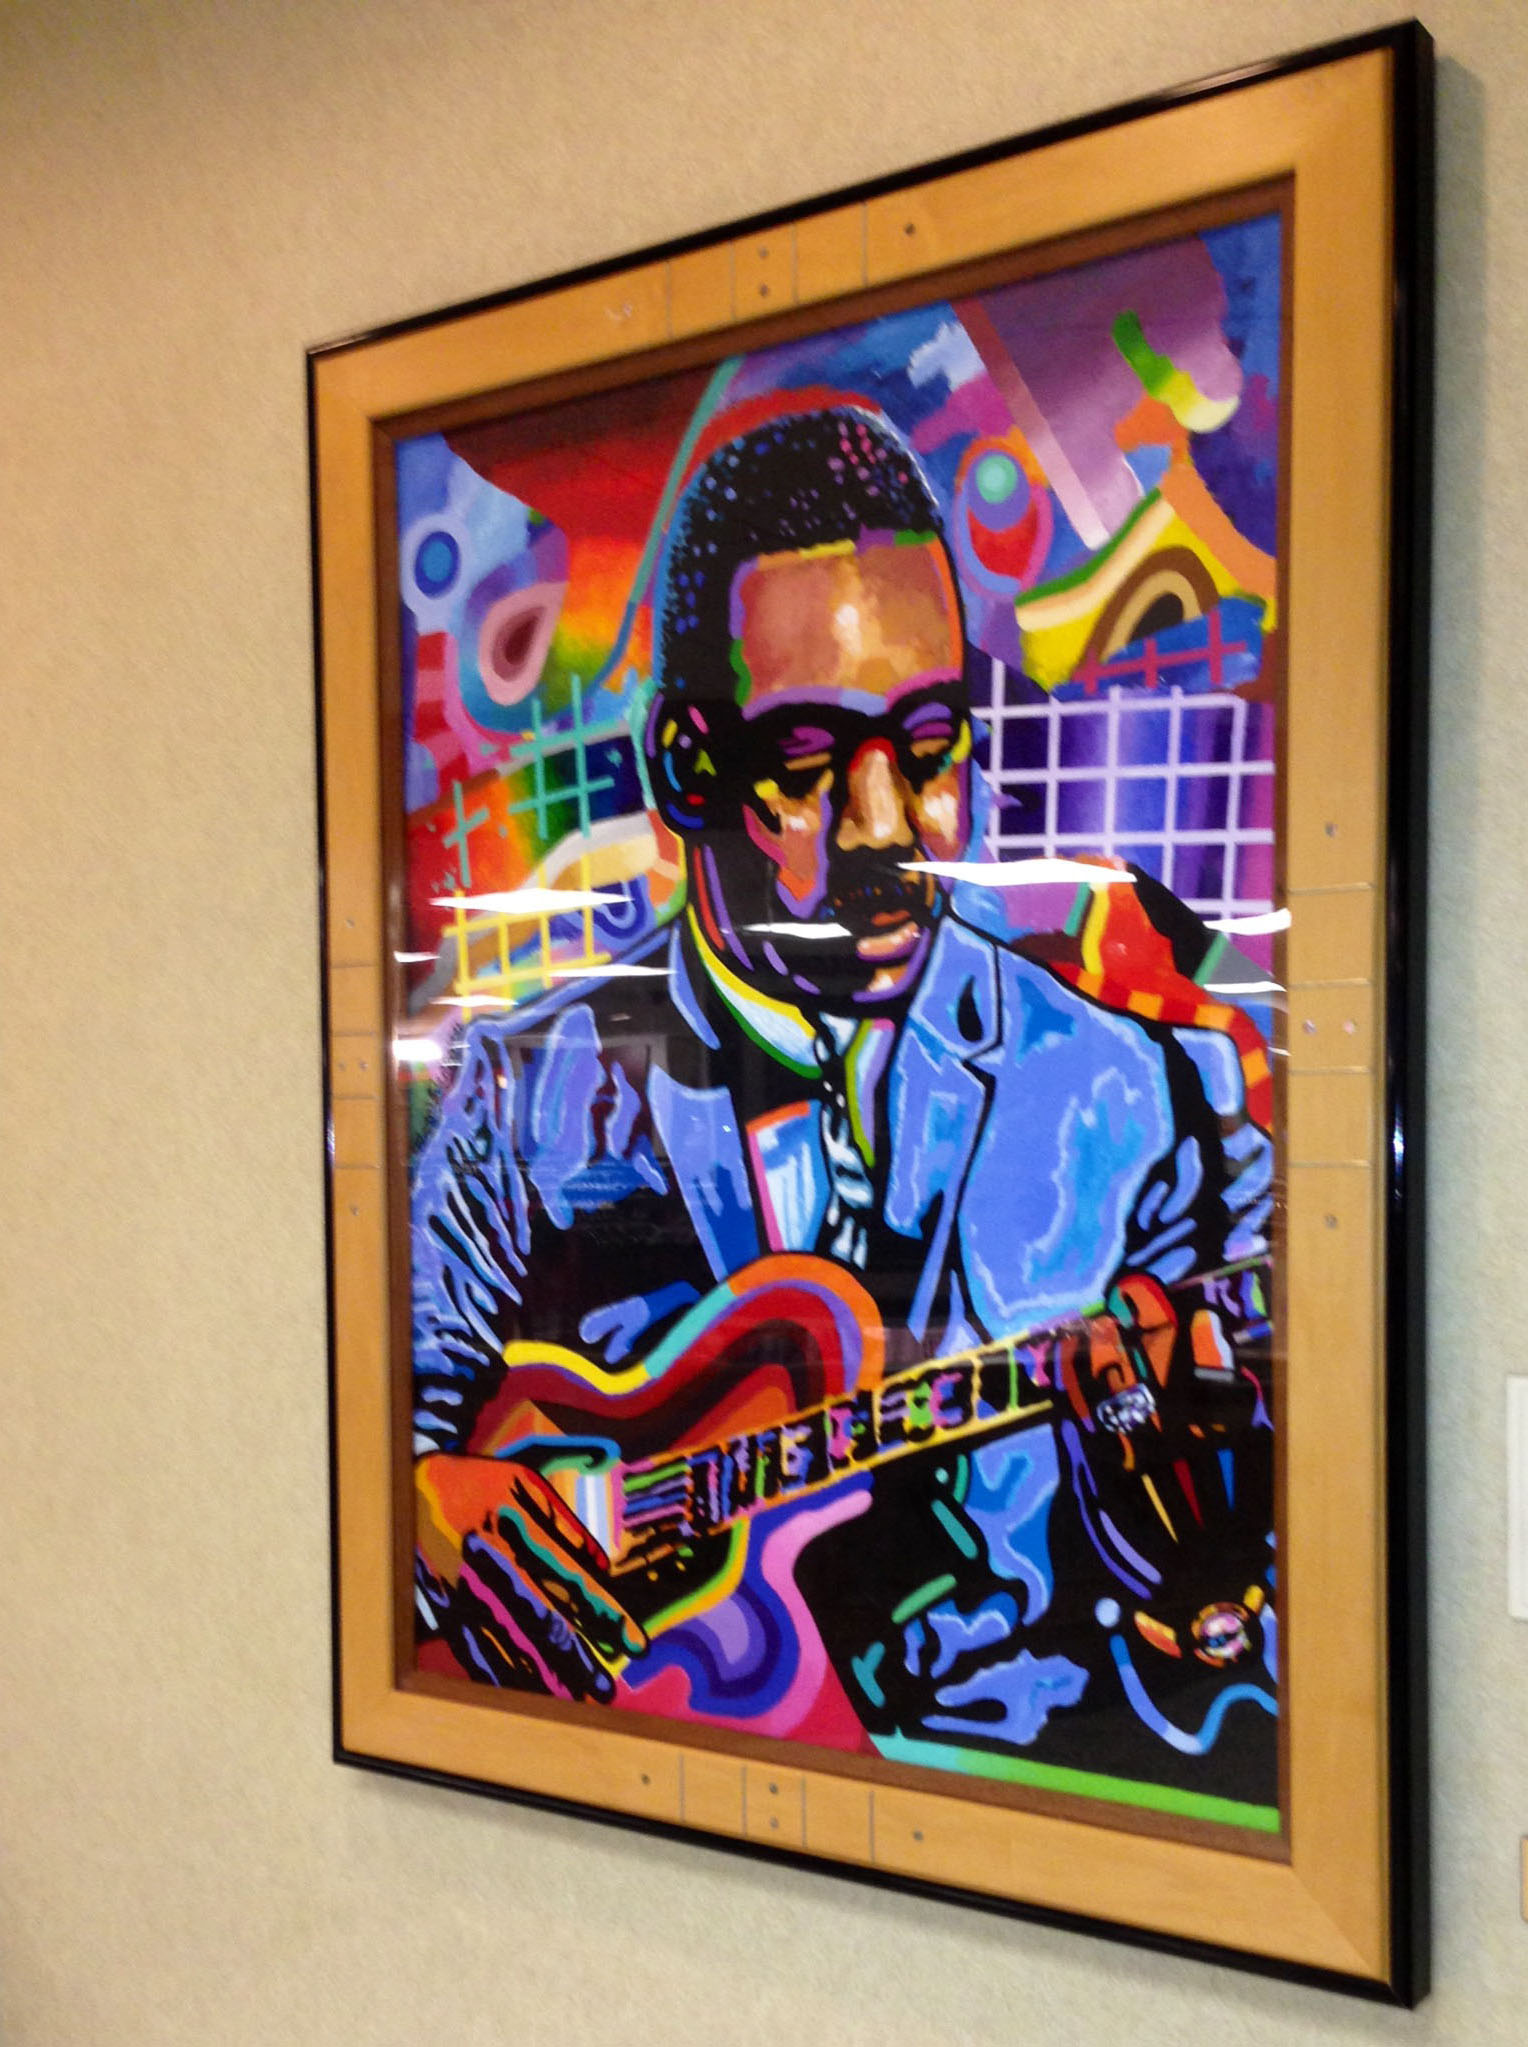 Caption: Joel Washington painted this portrait of jazz musician Wes Montgomery, which hangs in the Indiana Memorial Union., Credit: Lacy Scarmana